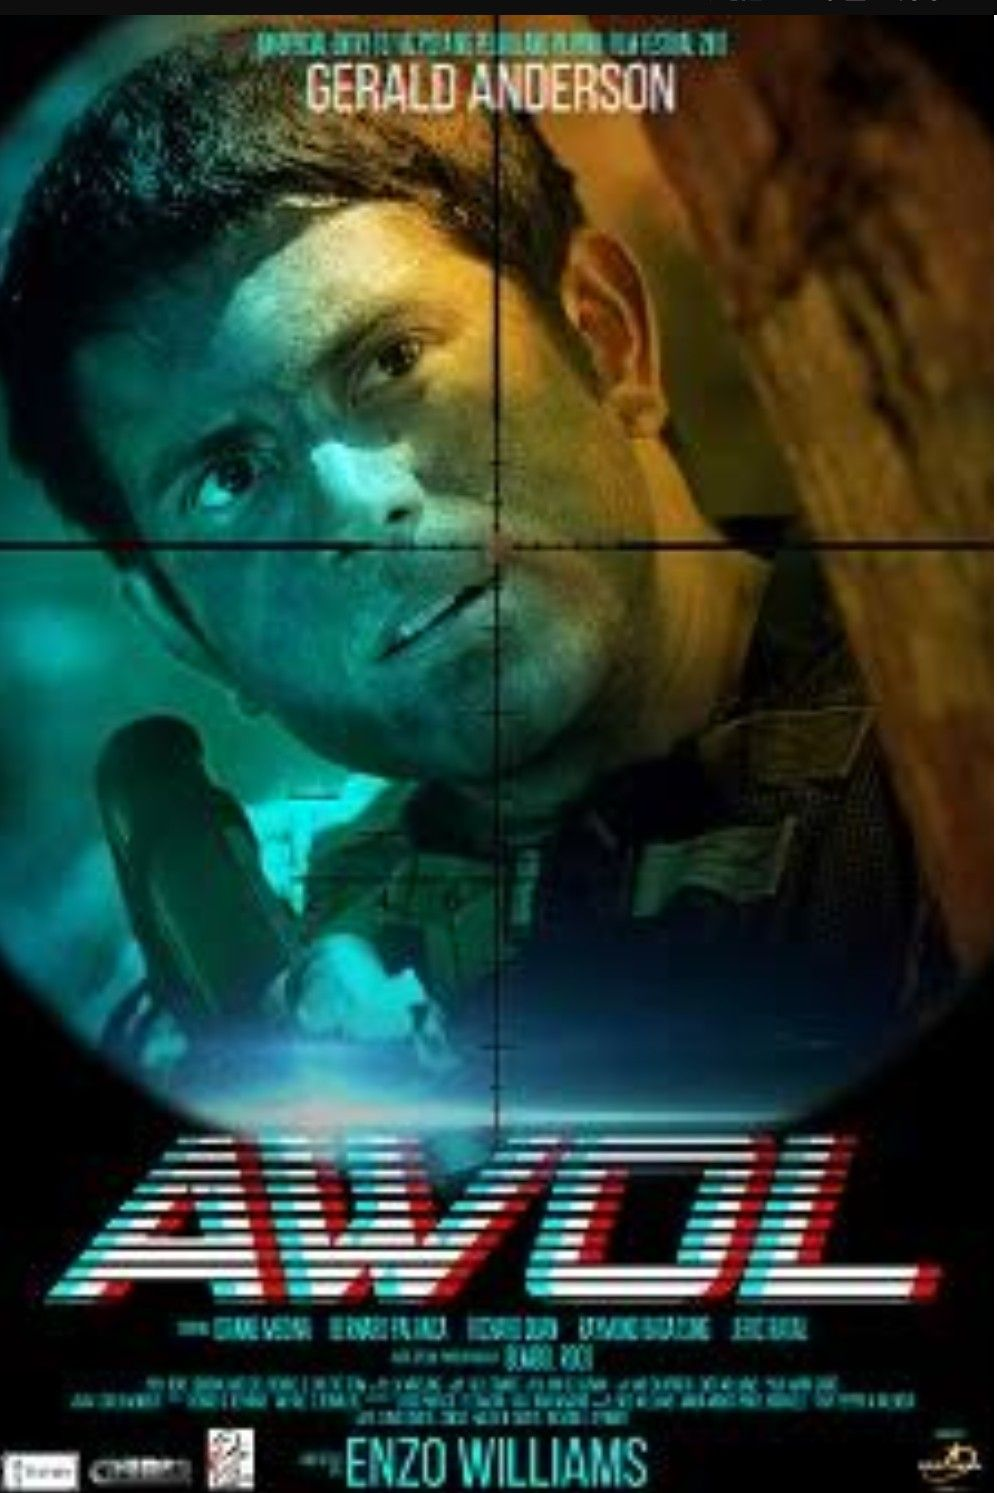 Awol A Filipino Action Film Starred By Gerald Anderson